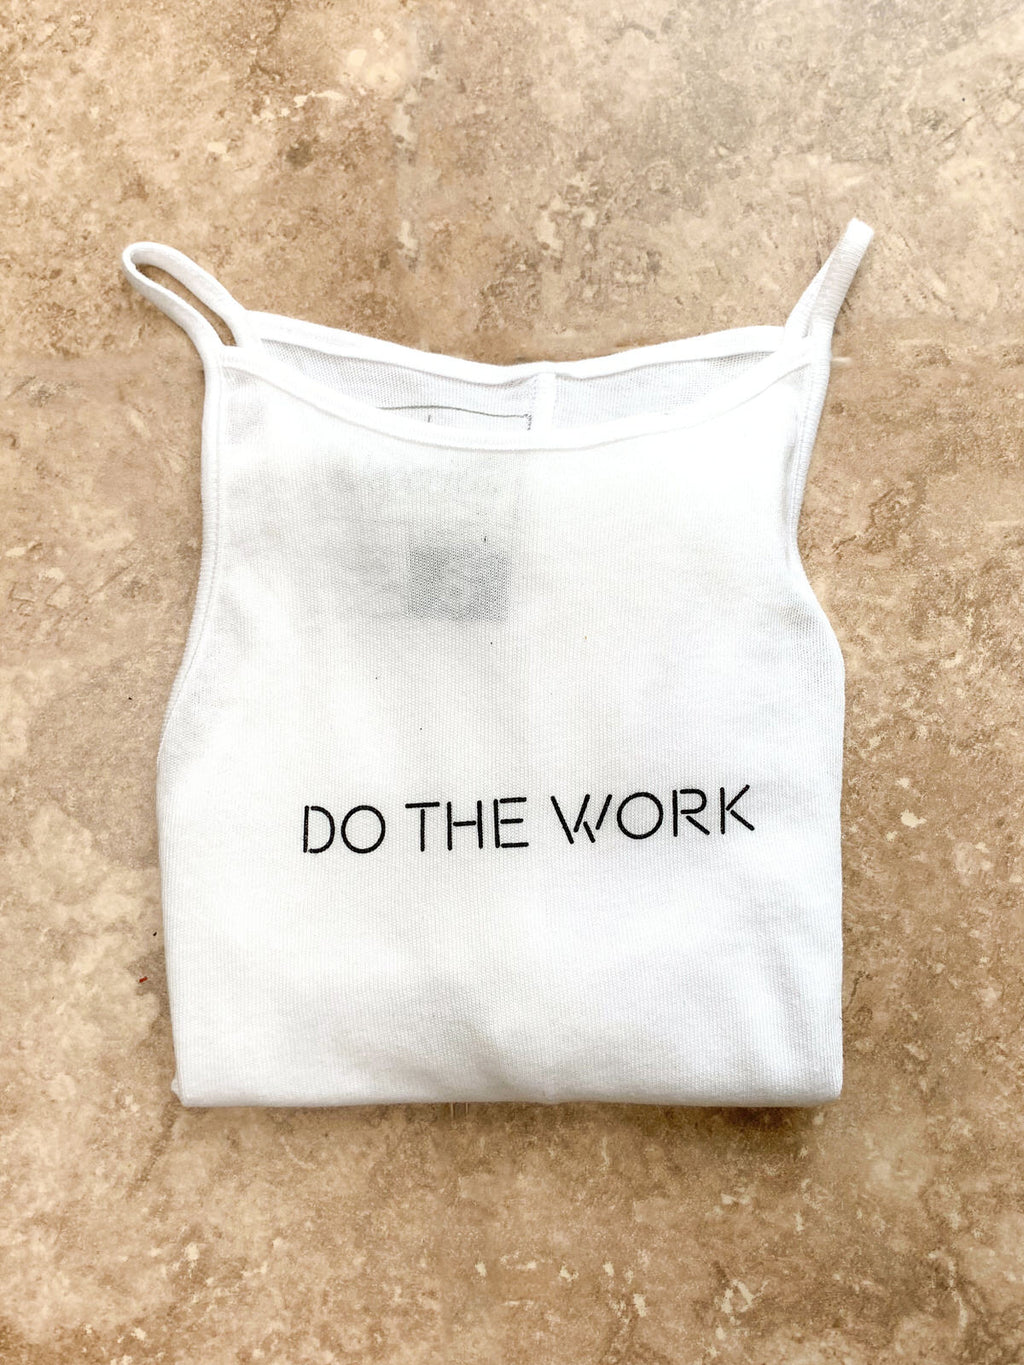 Do The Work Tank Top - White